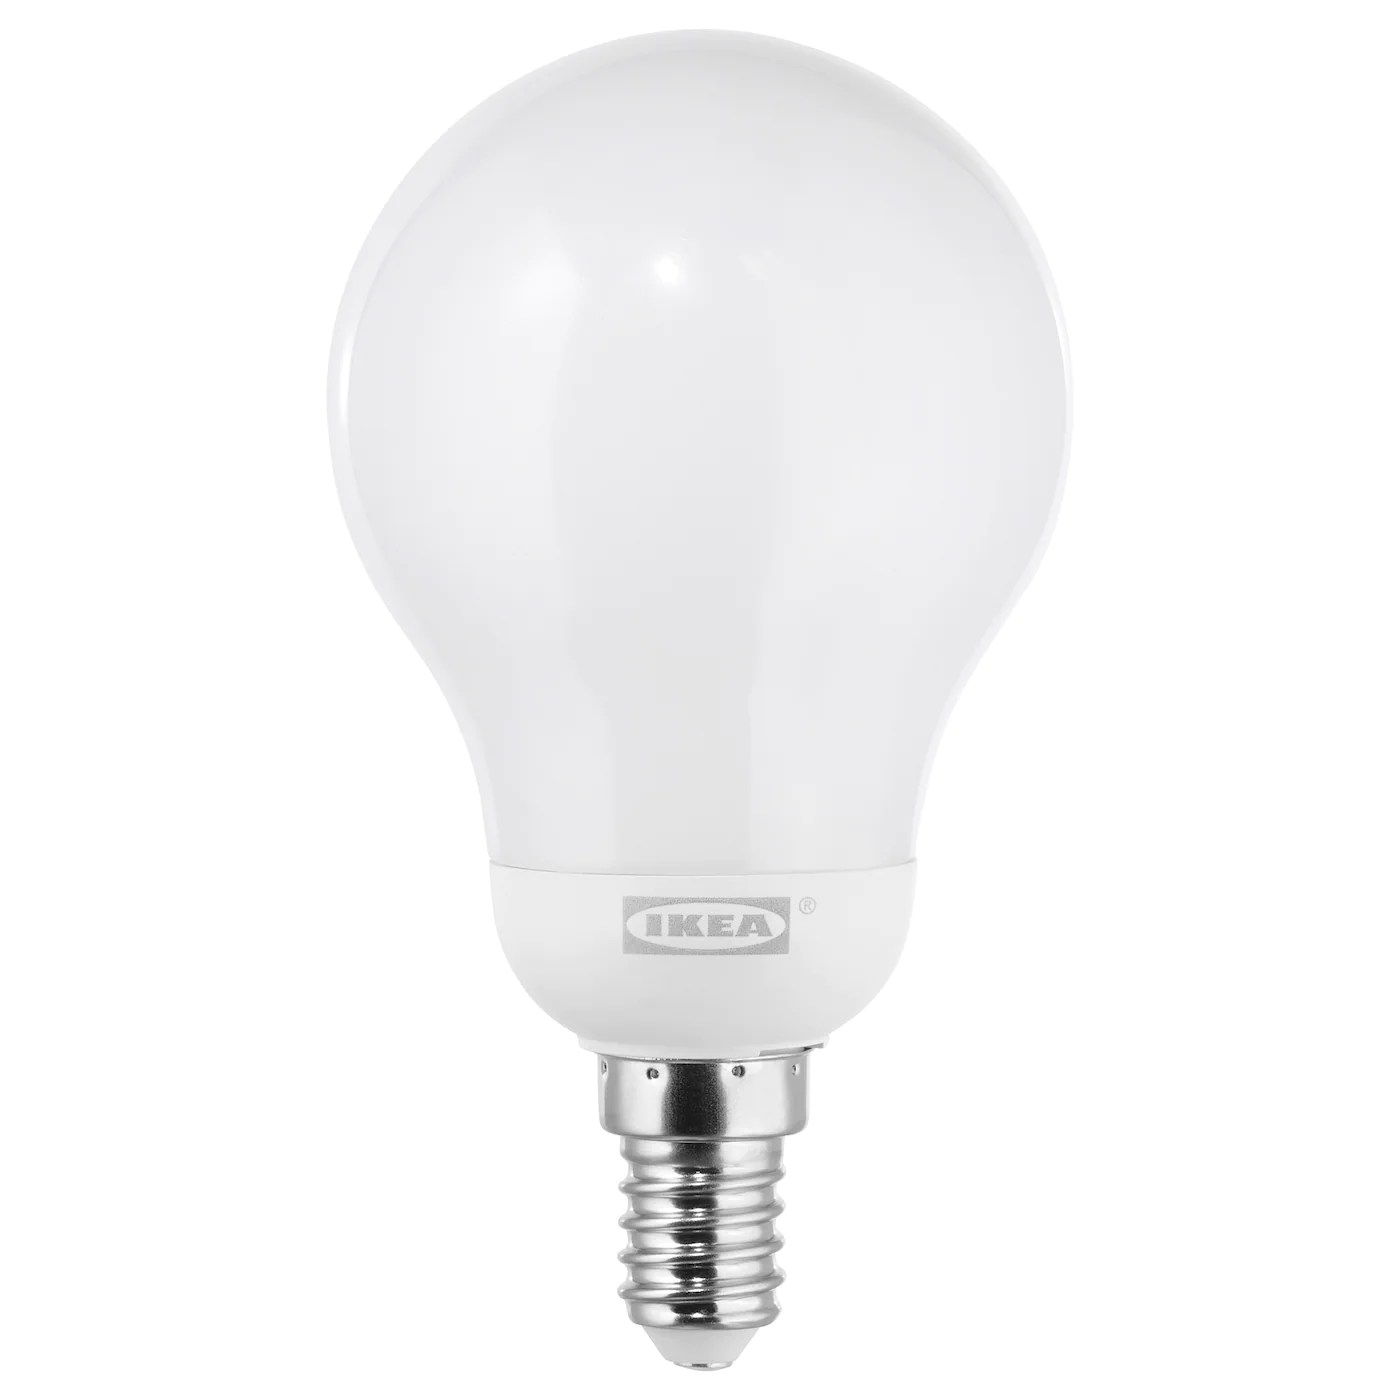 Led E 14 Ledare Led Bulb E14 600 Lumen Warm Dimming Globe Opal White